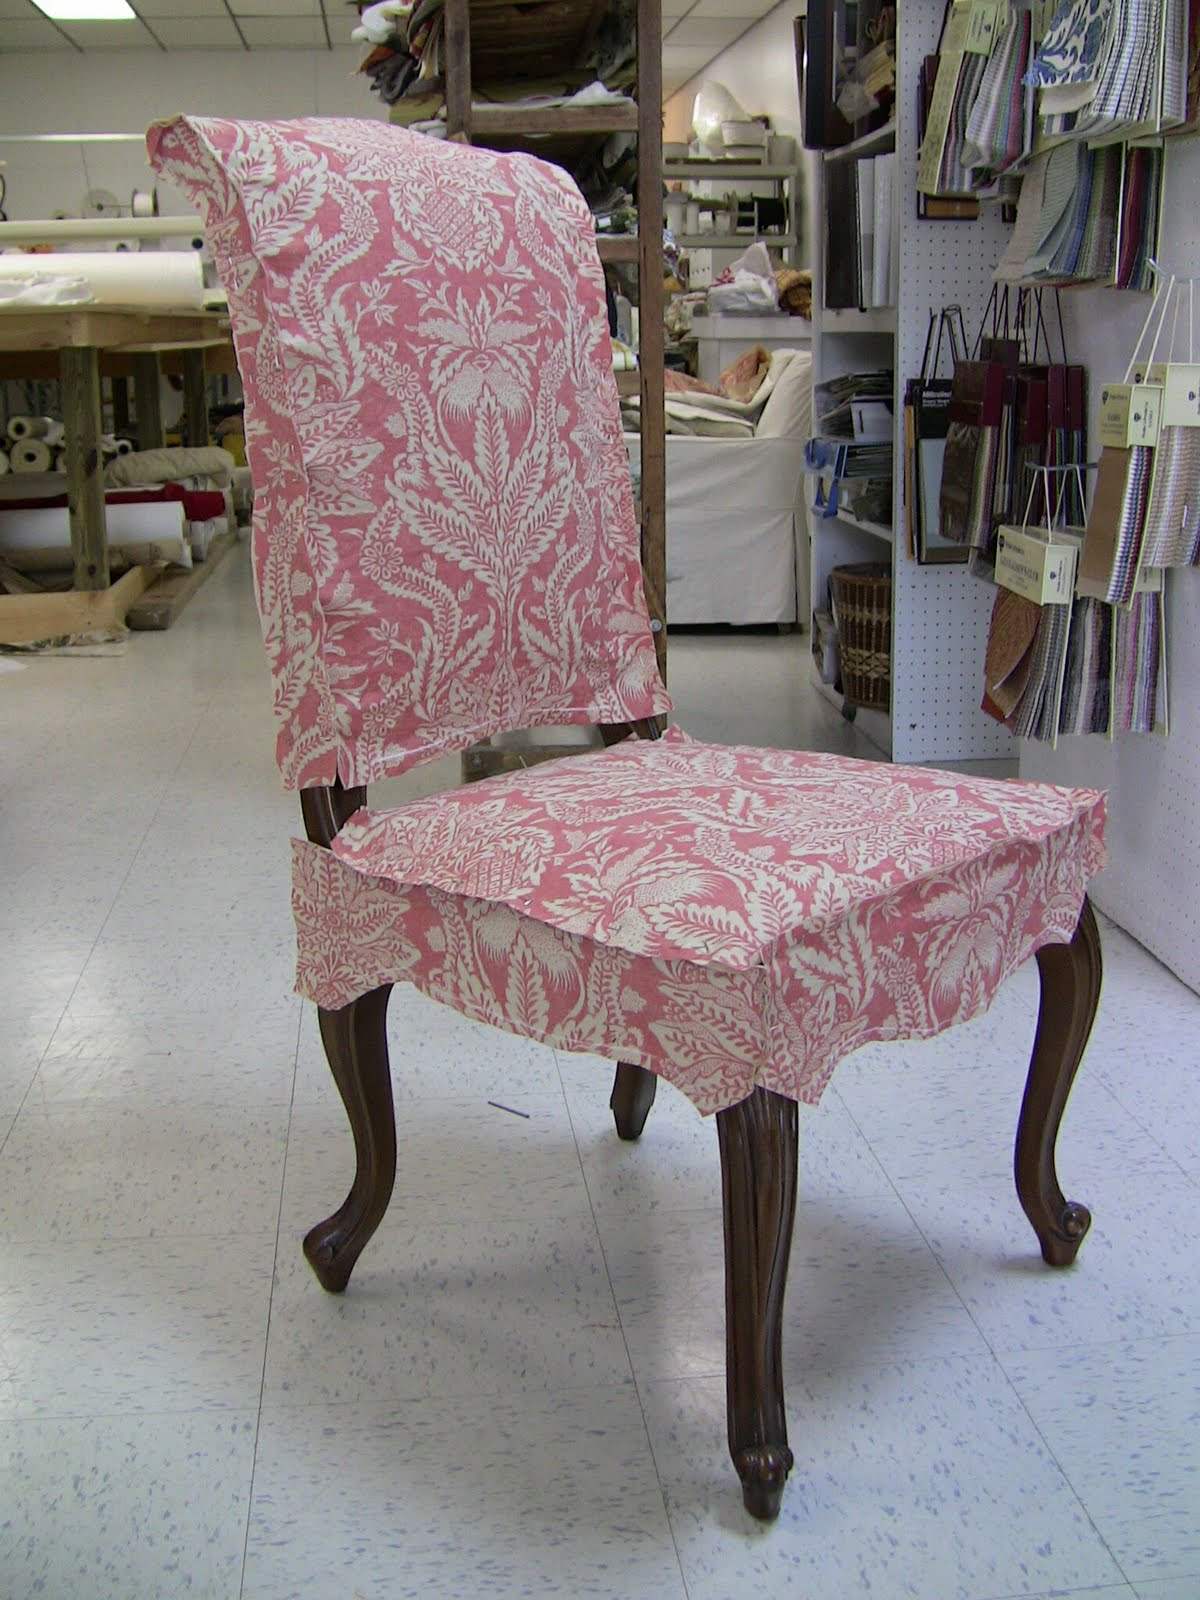 Look Ma Im Sewing Slipcovers French dining chairs : Pat40Kincaids002 from customslipcovereducationblog.blogspot.com size 1200 x 1600 jpeg 254kB